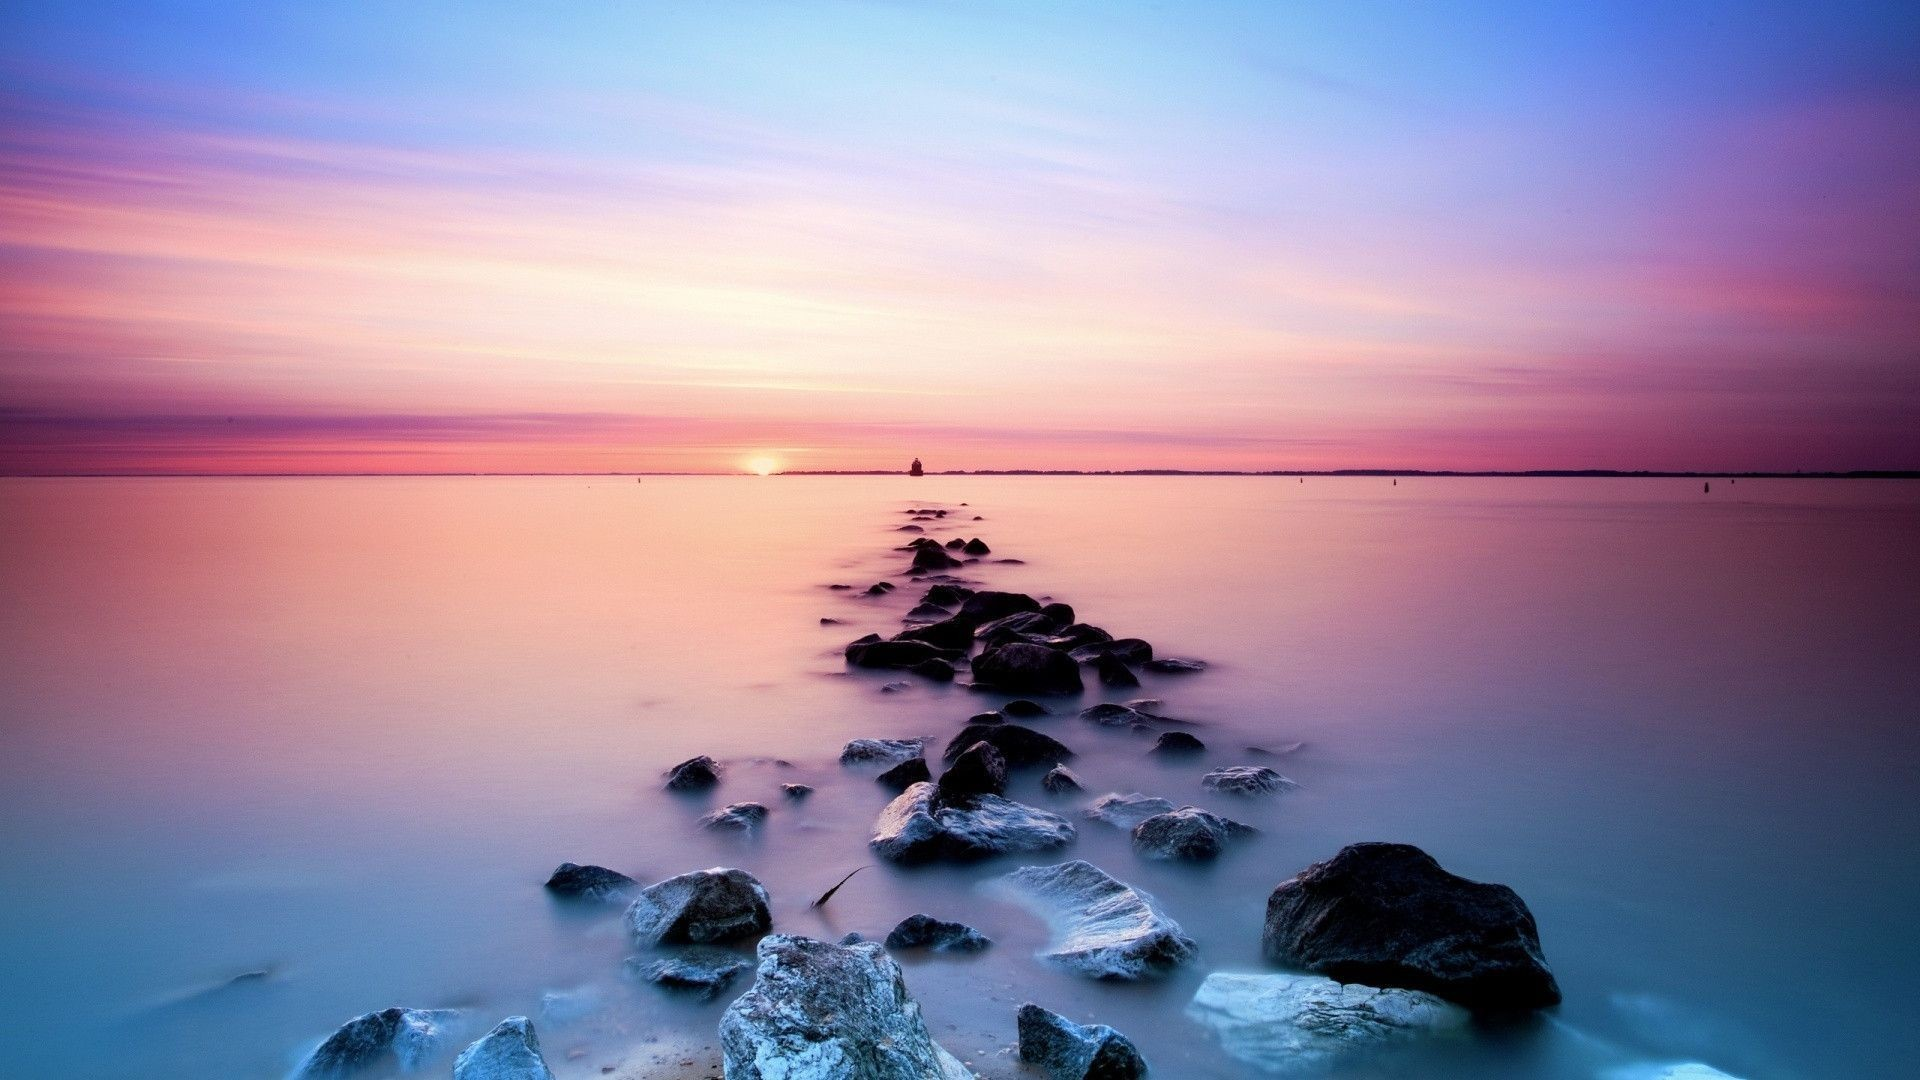 Res: 1920x1080, Pastel Wallpapers HD Beautiful Pastel Patterns | Apps | 148Apps